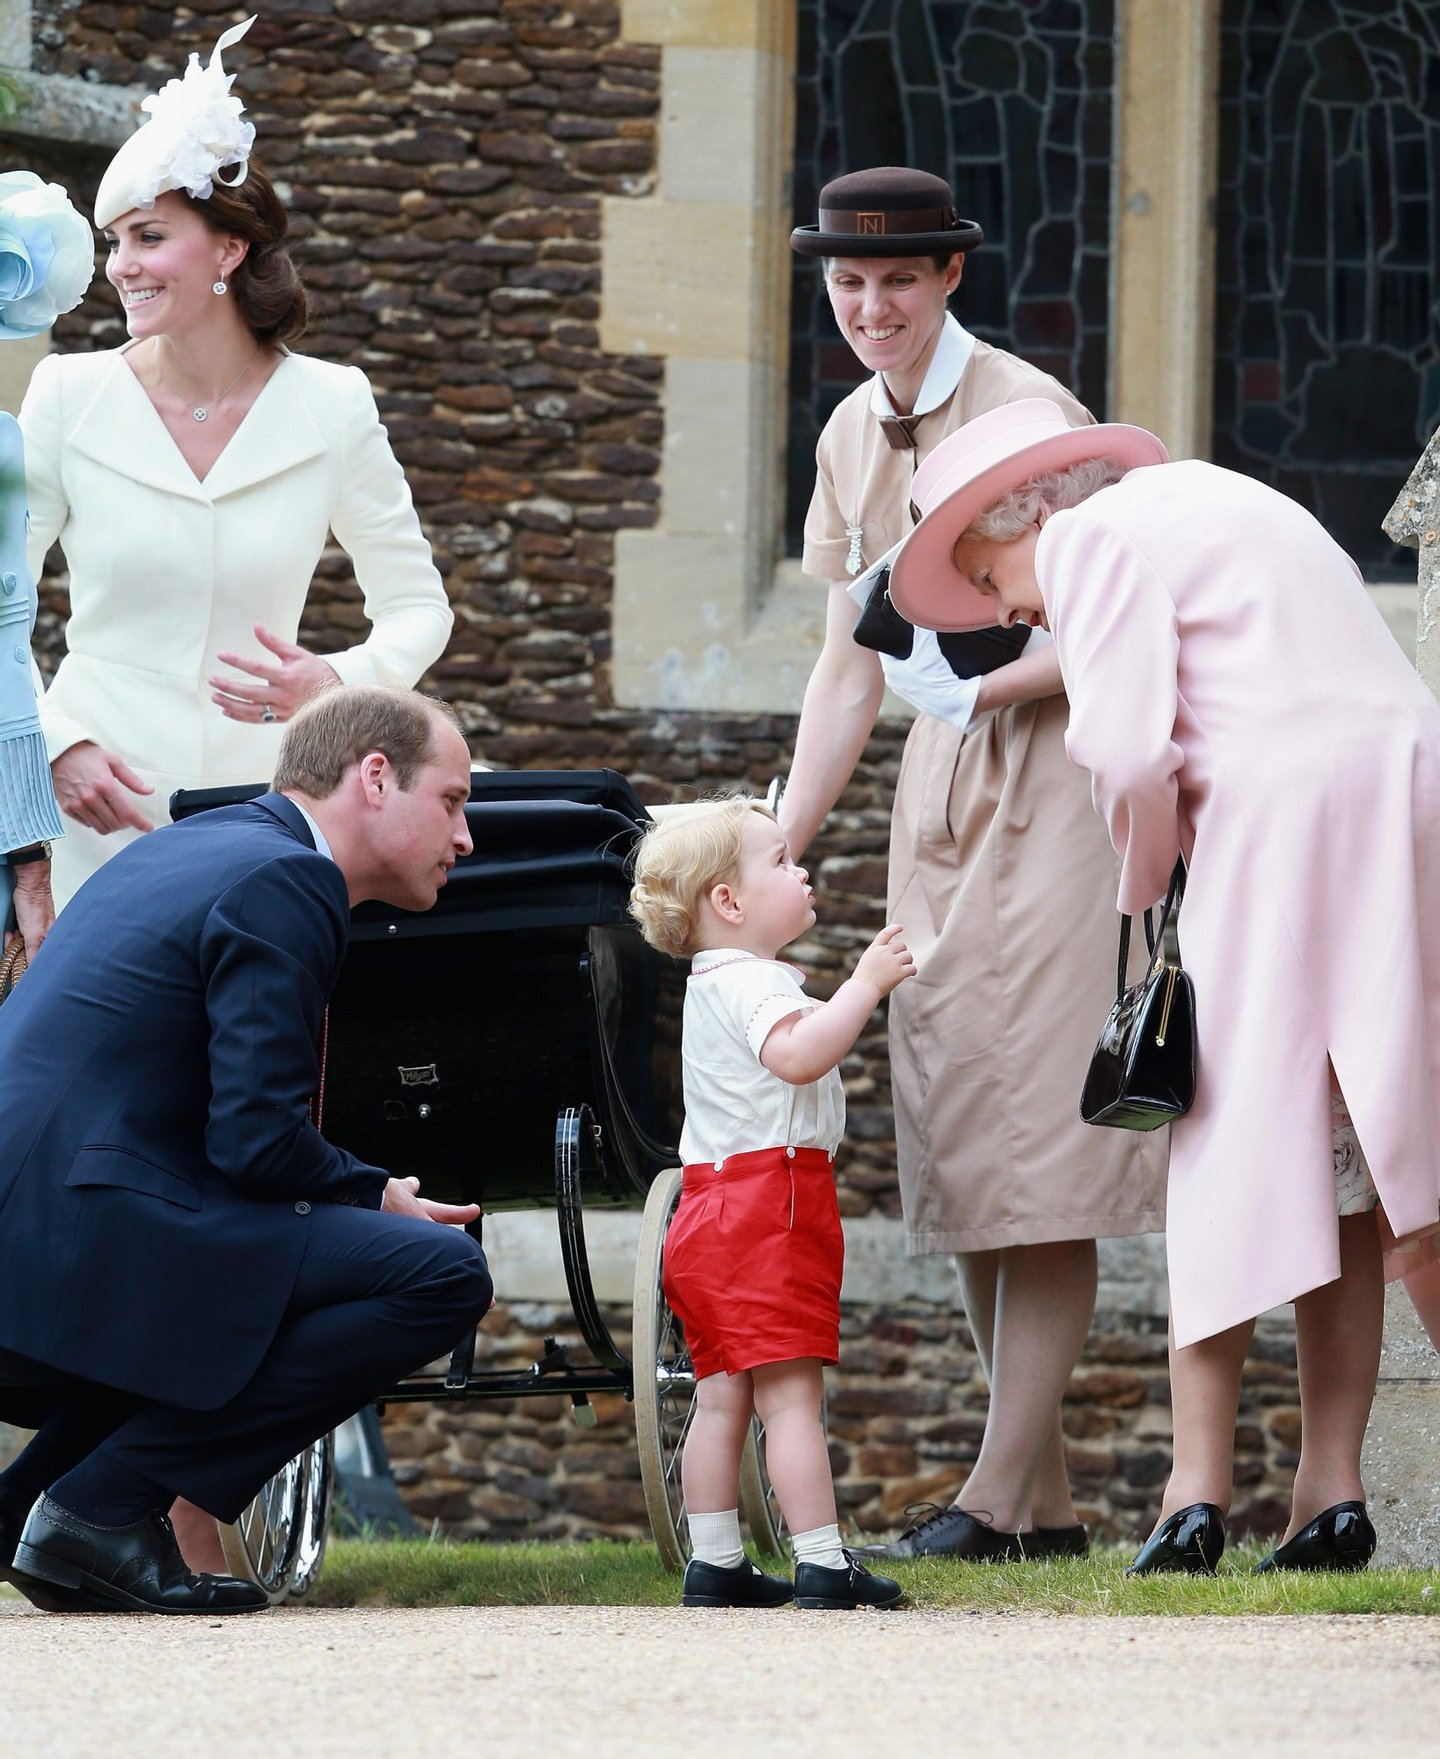 KING'S LYNN, ENGLAND - JULY 05: Catherine, Duchess of Cambridge, Prince William, Duke of Cambridge, Princess Charlotte of Cambridge and Prince George of Cambridge, Queen Elizabeth II and Prince George's nanny, Maria Teresa Turrion Borrallo leave the Church of St Mary Magdalene on the Sandringham Estate for the Christening of Princess Charlotte of Cambridge on July 5, 2015 in King's Lynn, England. (Photo by Chris Jackson - WPA Pool / Getty Images)